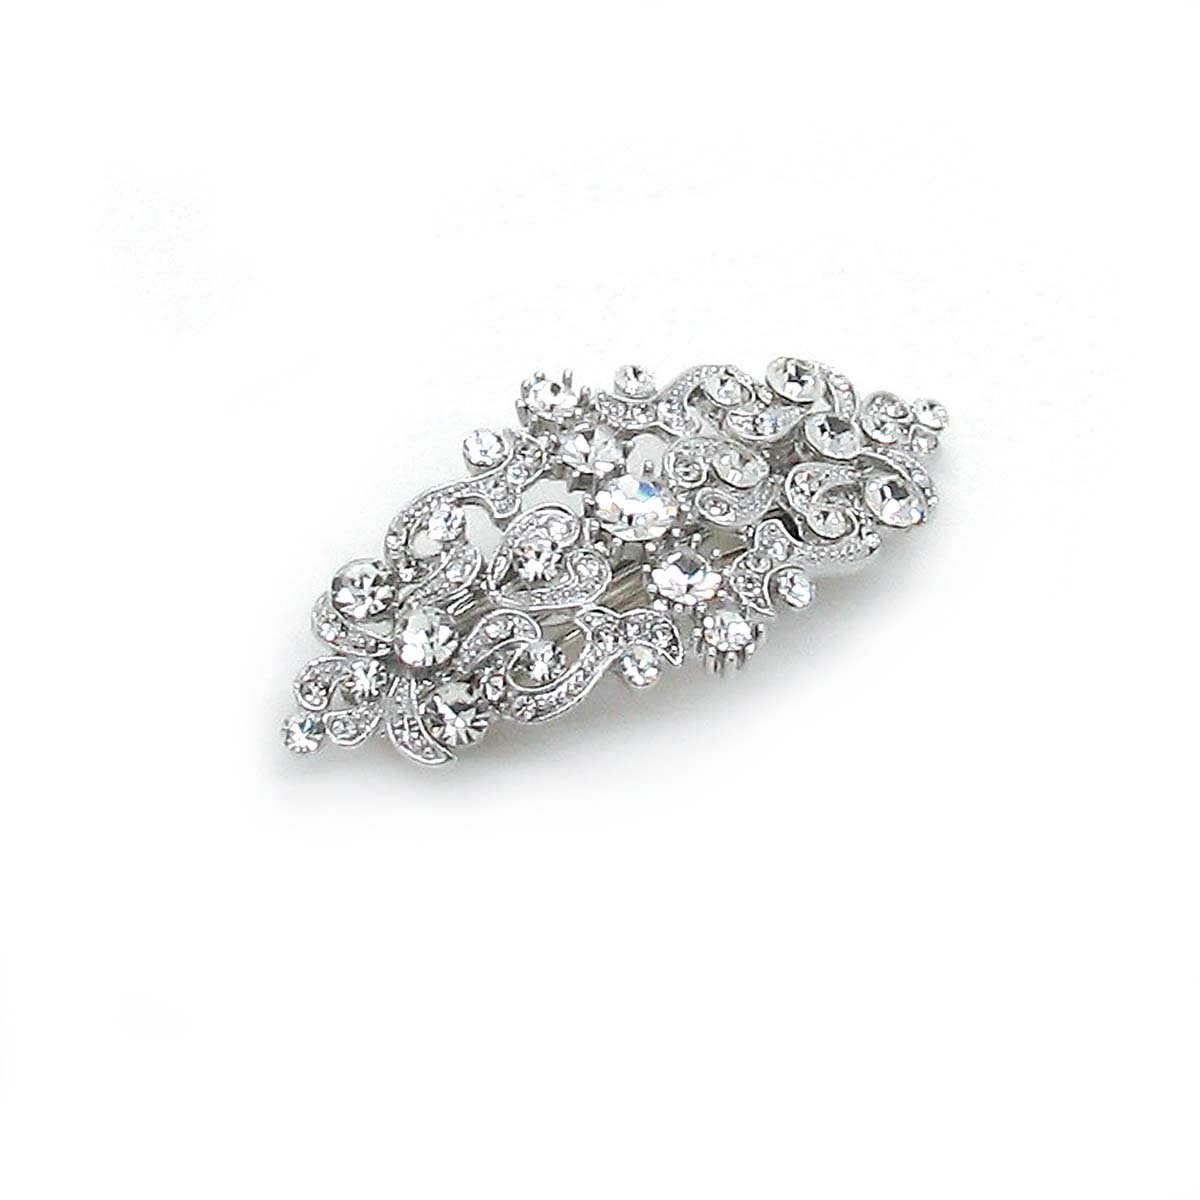 Sparkly Bride Bridal Hair Barrette Vintage Romancing Heart Rhinestone Crystal Small 2.5 inches by Sparkly Bride